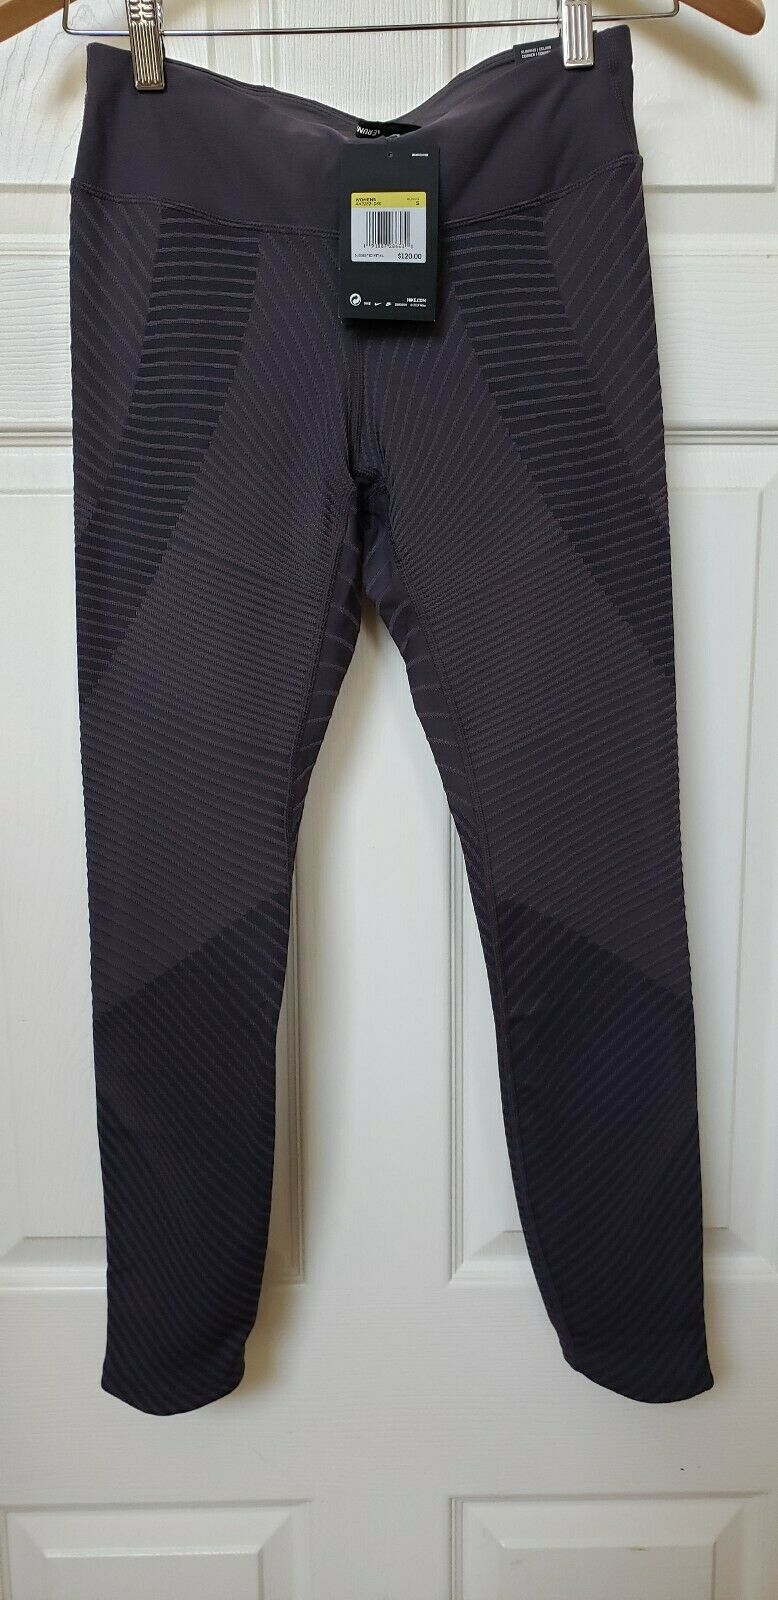 Nike Epic Lux Stratch Fit Full Lengte Long hardlopen Pants, Womannen, afmeting S, NwT